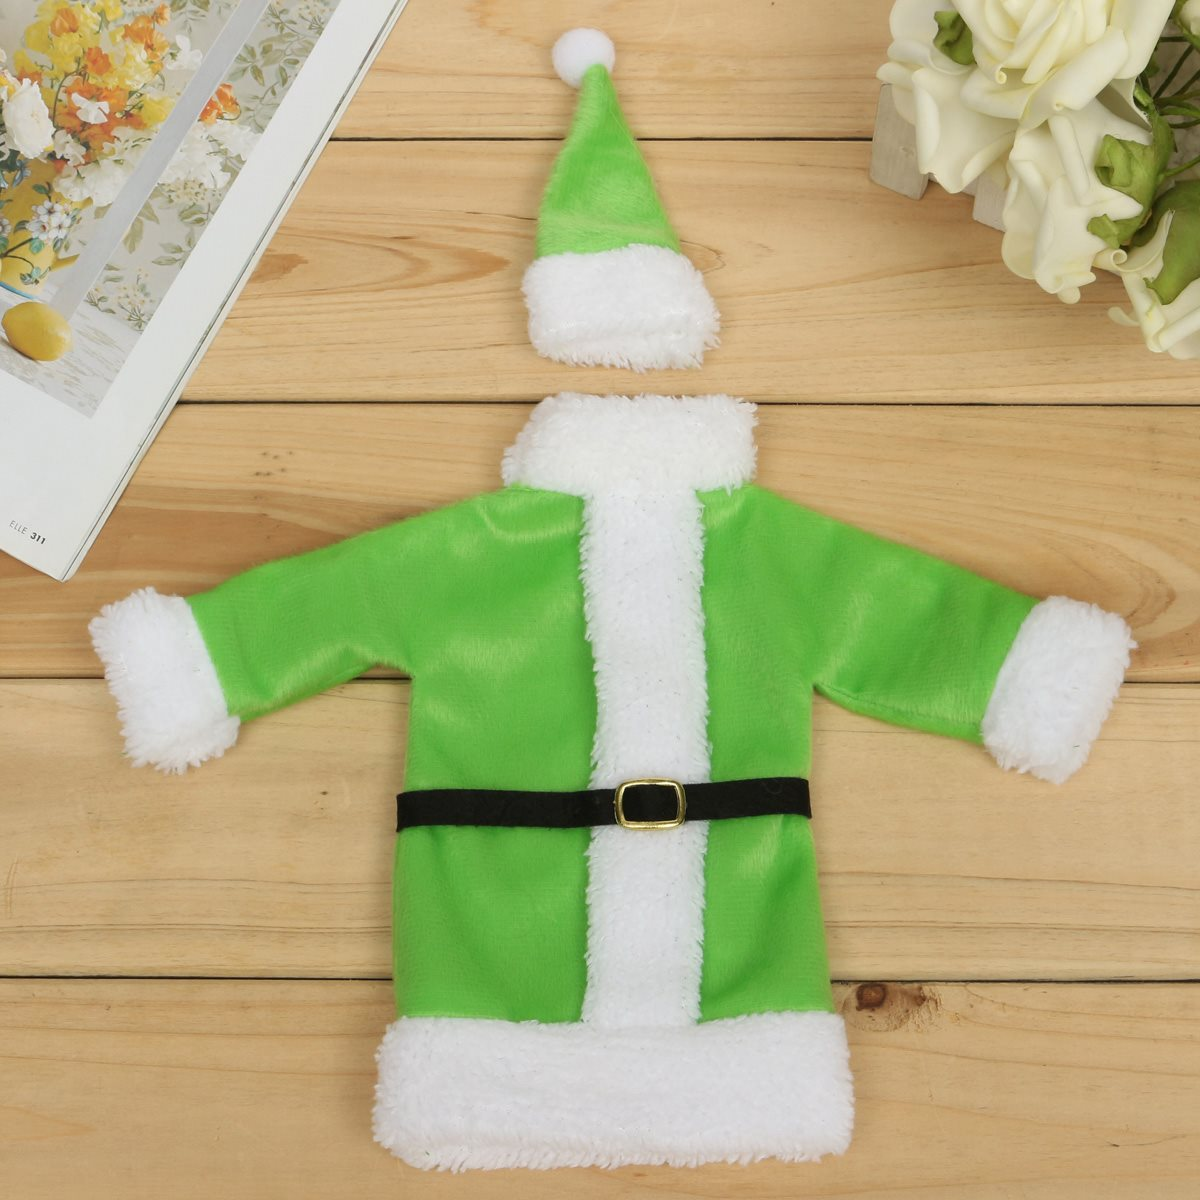 Green Xmas Cloth Wine Bottle Storage Bag Christmas Dinner Party Bottle Cover Christmas Decoration Supplies Gift Bag Souvenir(China (Mainland))